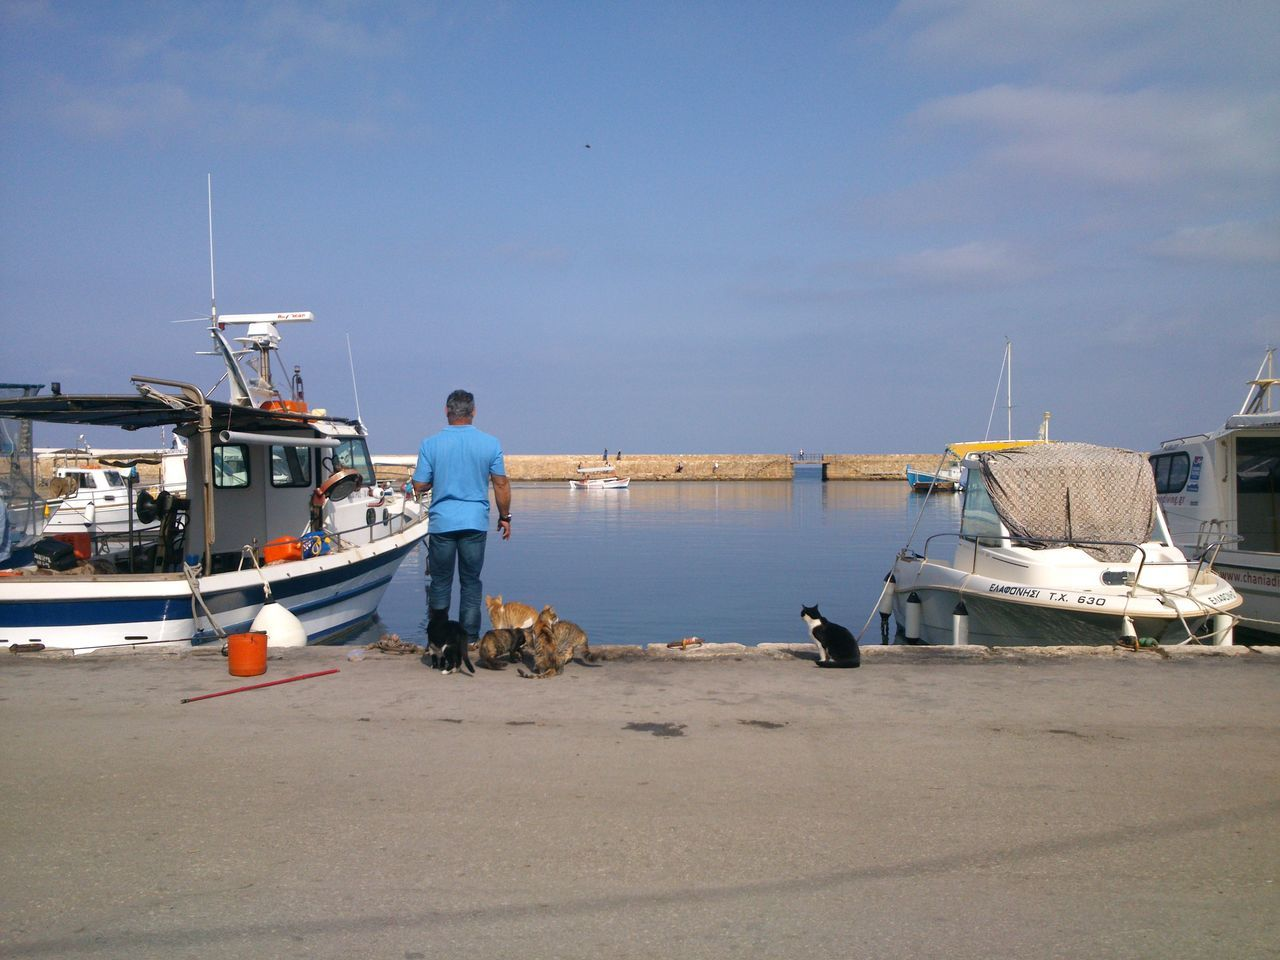 Fishing Adult Cats Chania Crete Day Fish Fisherman Greece Greek Fisherman Harbor Men Moored Nature Nautical Vessel Occupation One Man Only One Person Outdoors People Real People Sea Sky Water Working